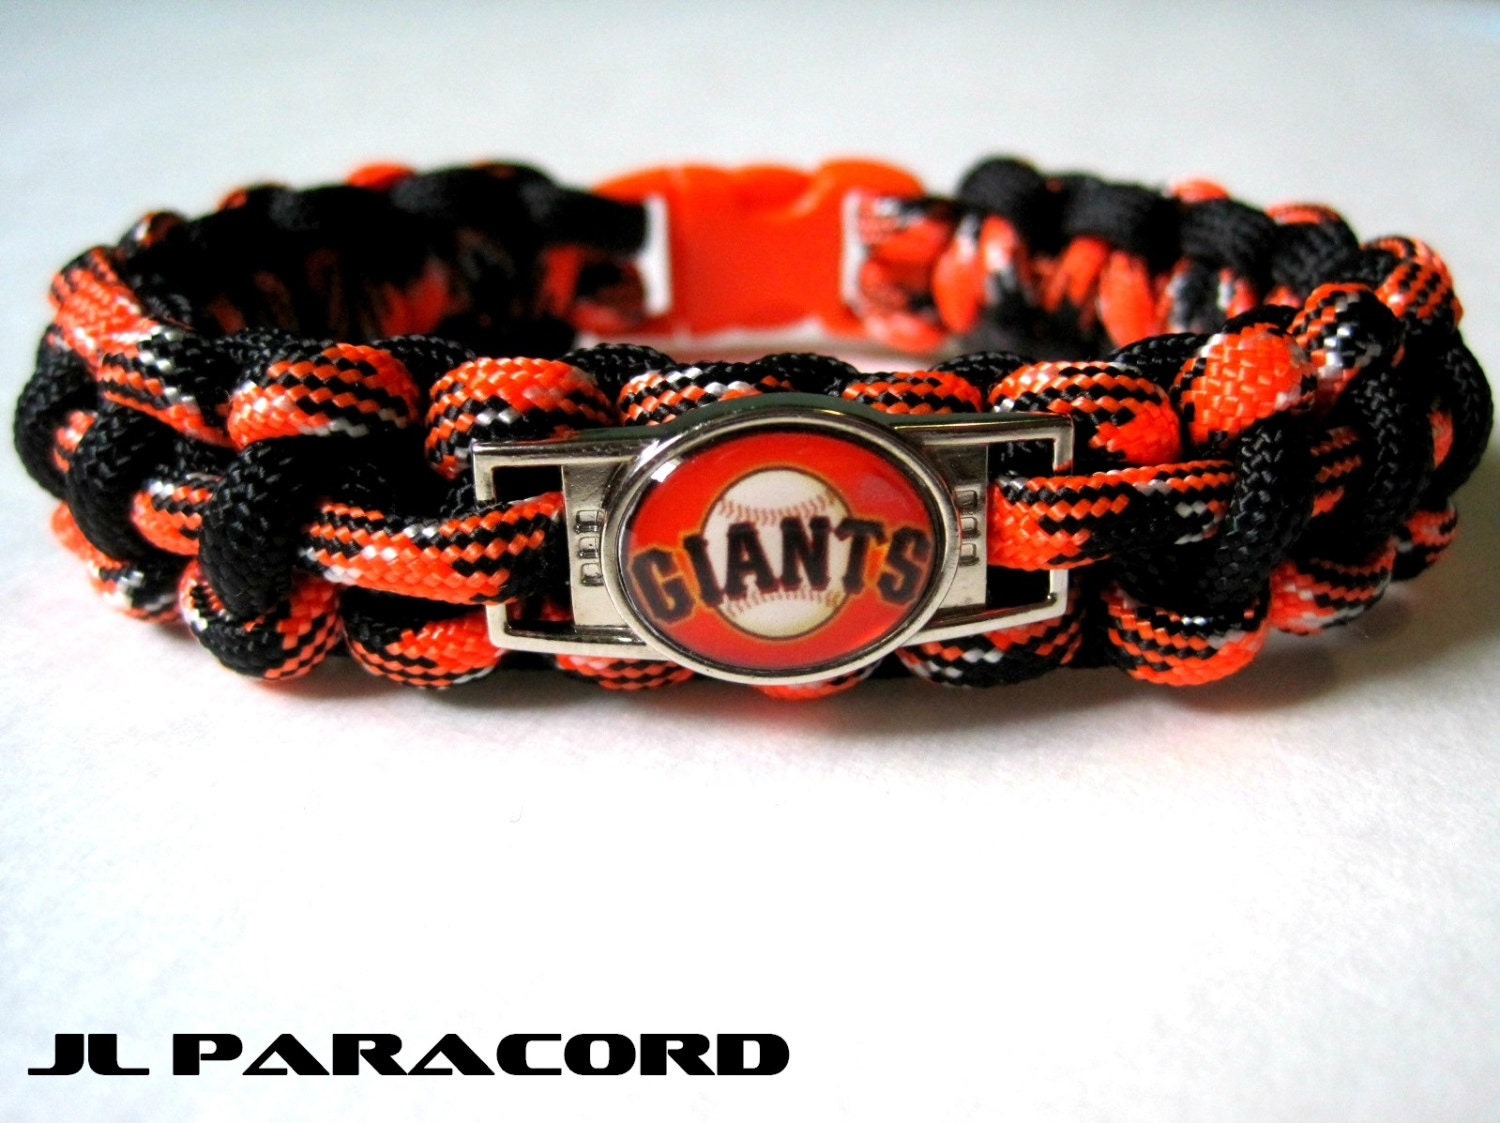 sf giants paracord charm bracelet